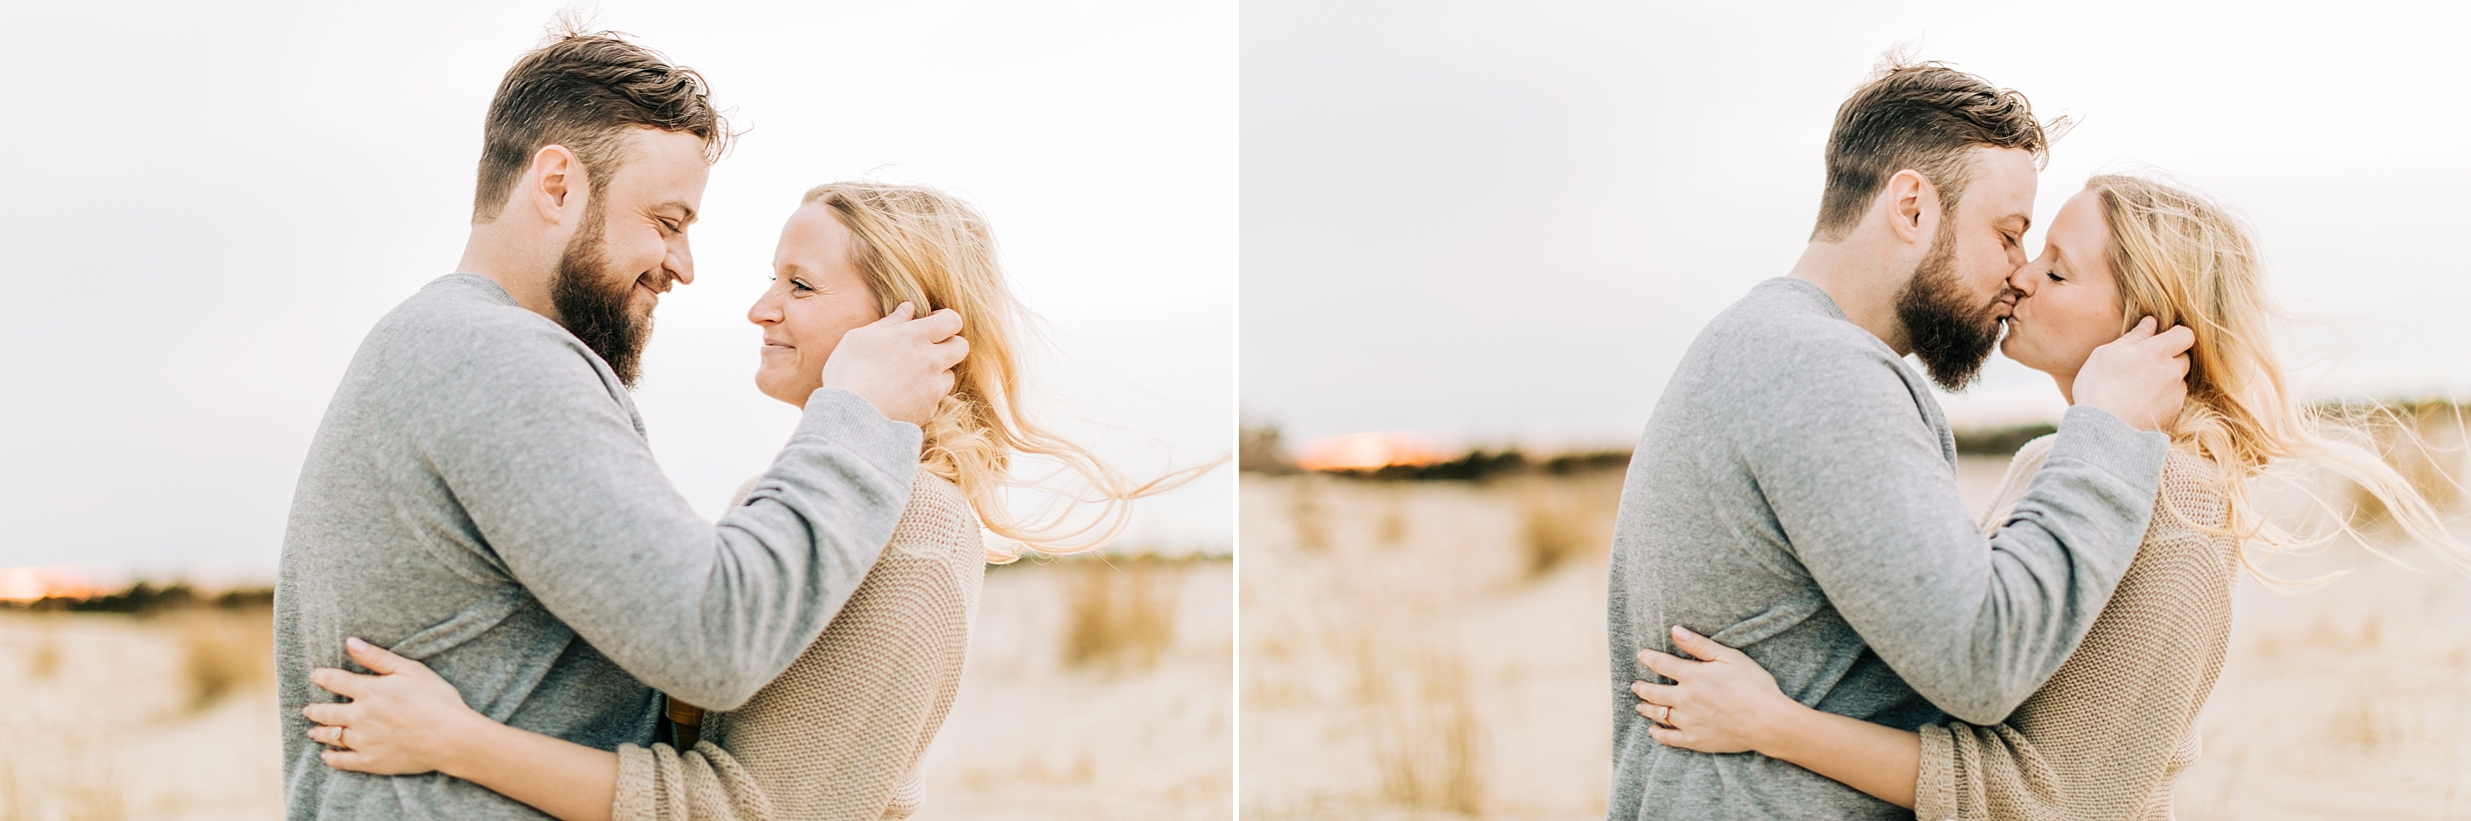 cloudy-engagement-sandy-hook-nj-asbury-photographer_0007.jpg